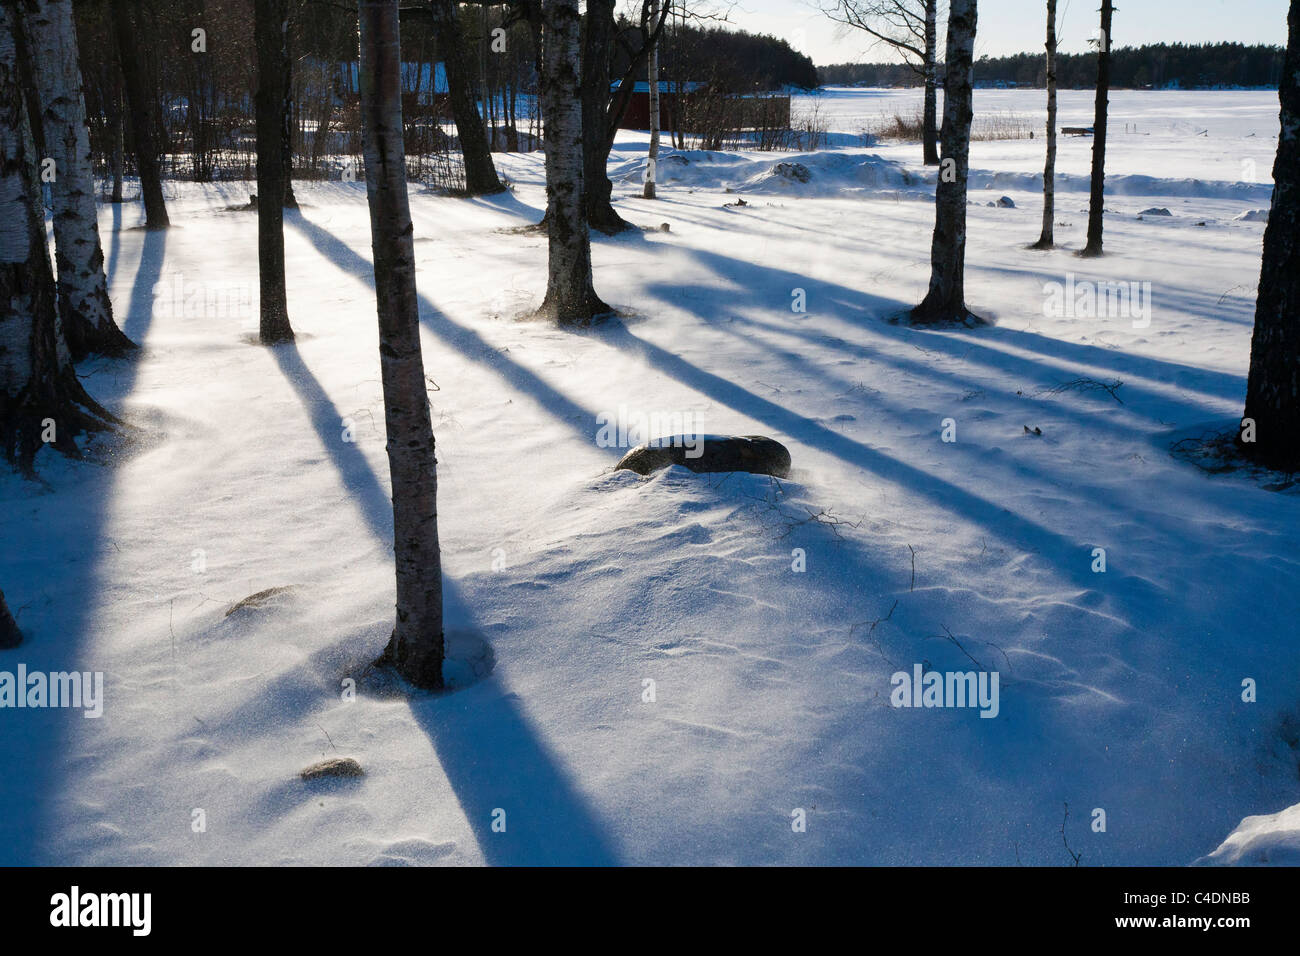 Light playing with tree trunks and whirling snow. - Stock Image